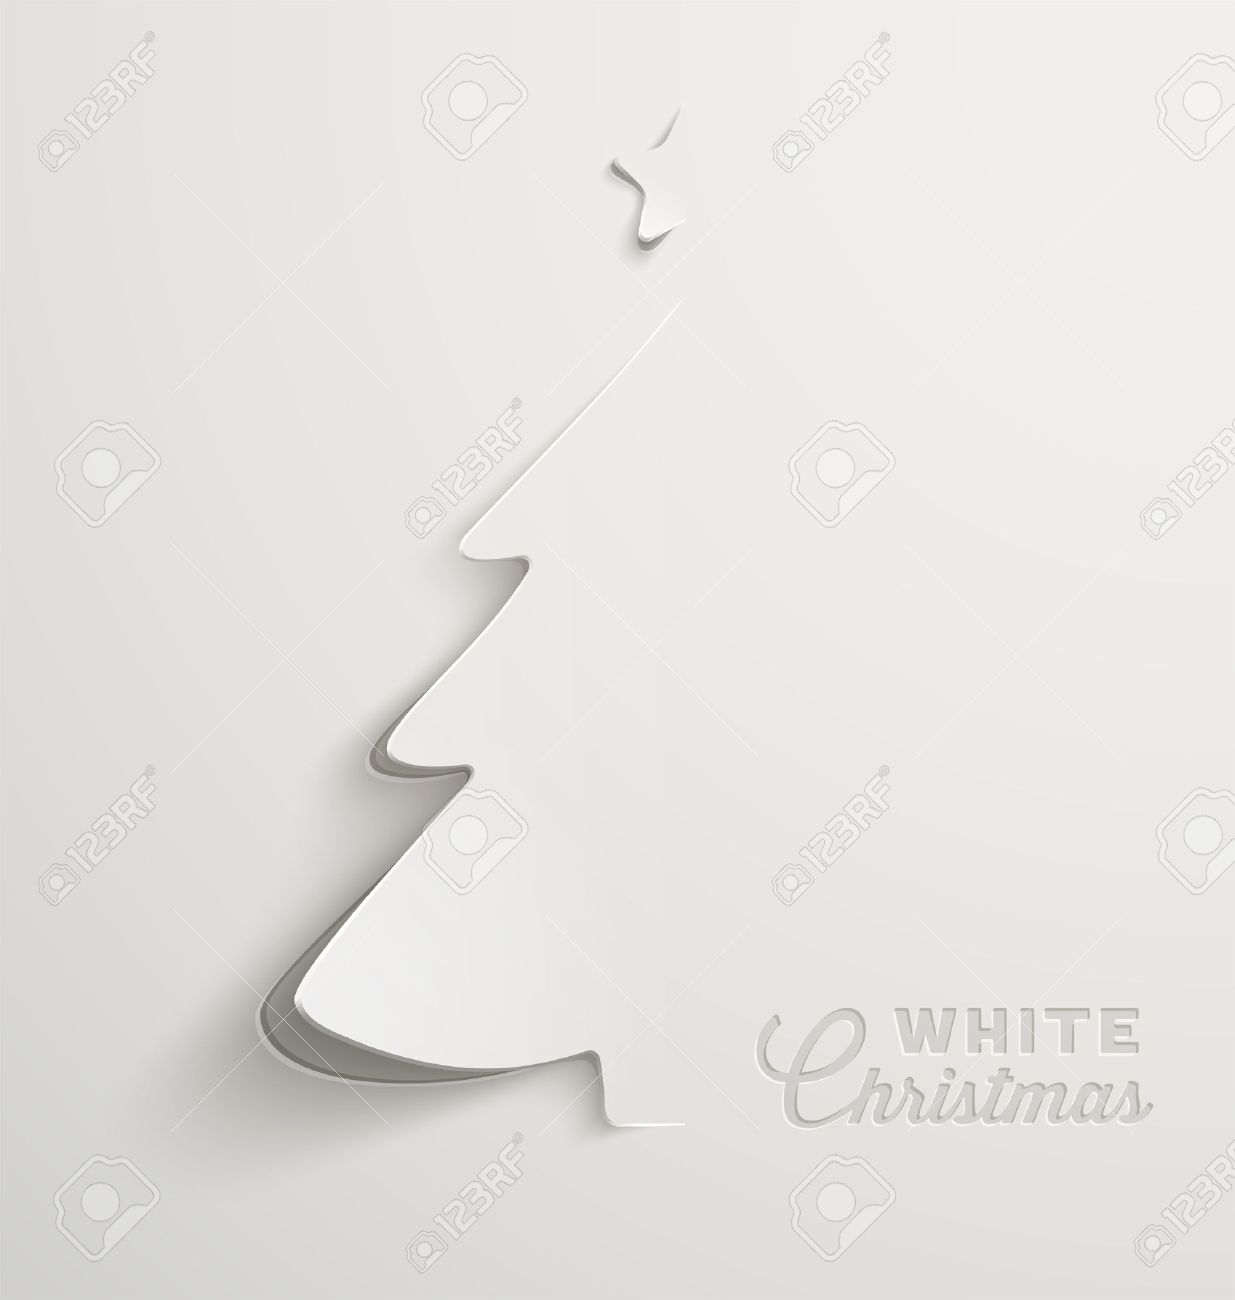 White Christmas, Minimal Christmas Card Design Royalty Free Cliparts ...